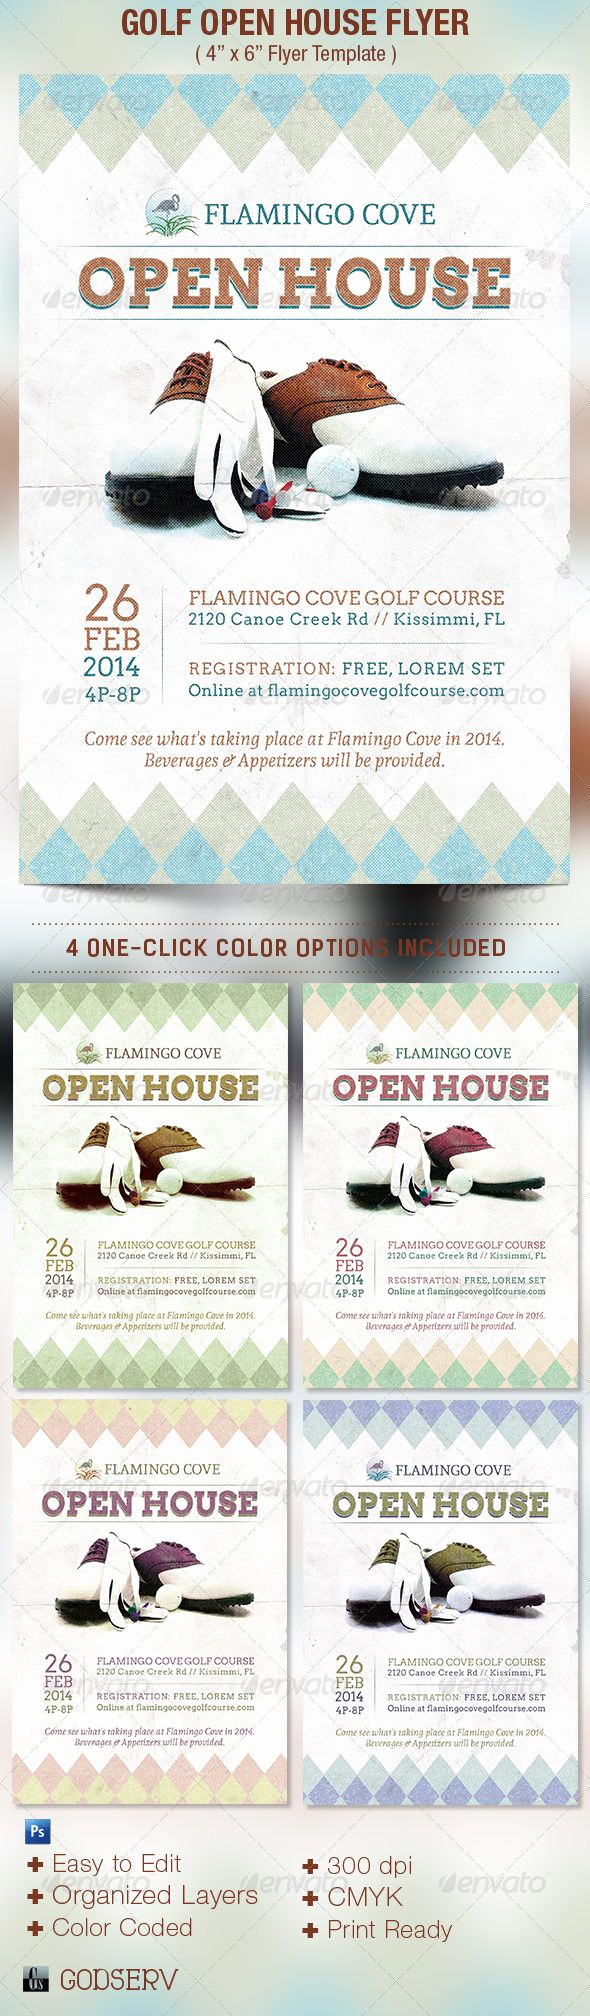 Open House Flyer Templates Elegant 1000 Ideas About Open House Invitation On Pinterest